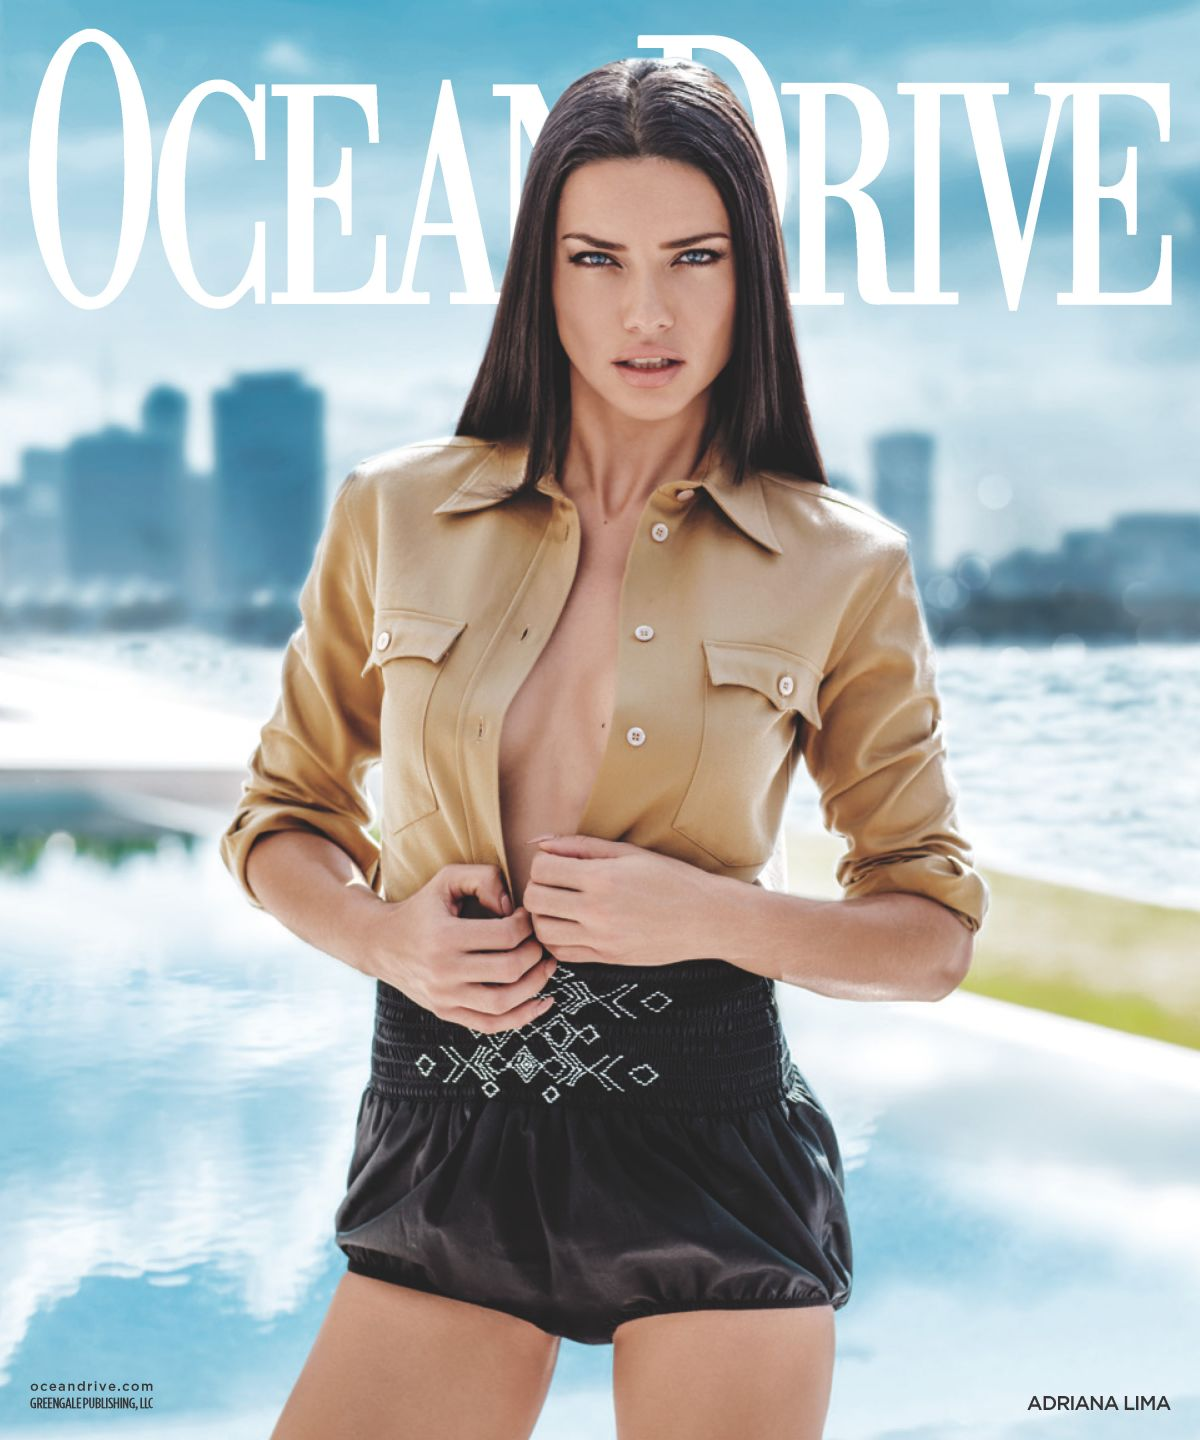 ADRIANA LIMA in Ocean Drive Magazine, March 2017